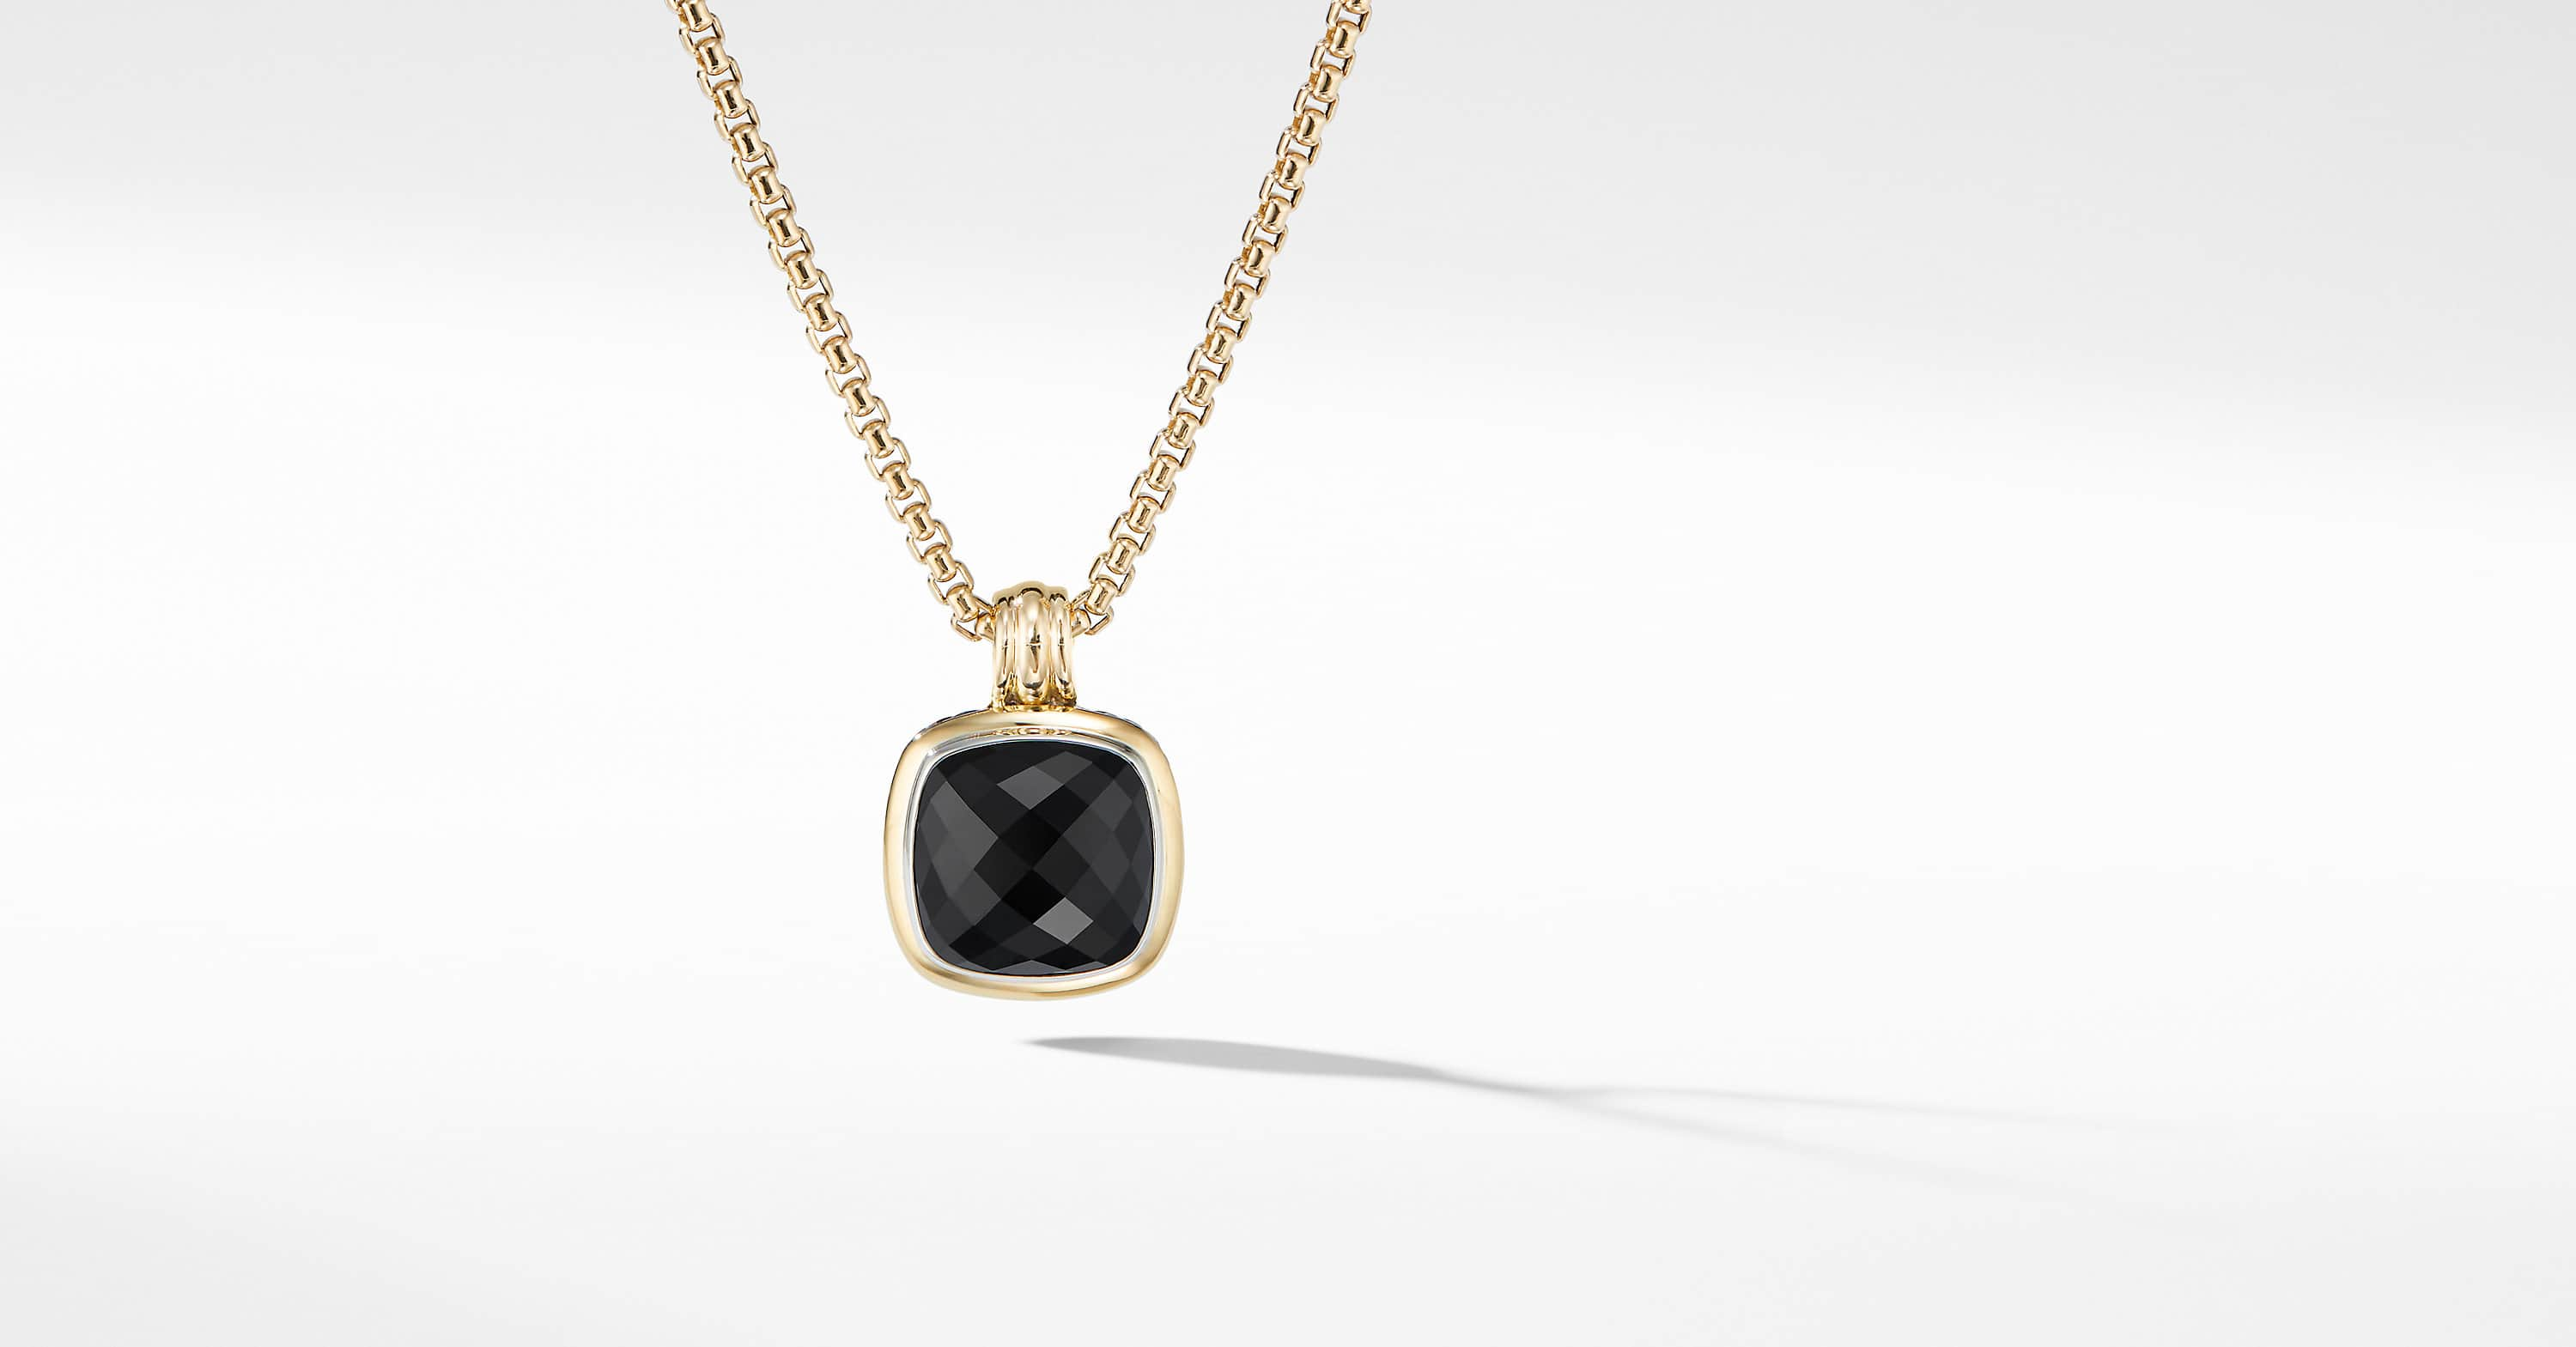 Albion Pendant with 18K Yellow Gold, 14mm